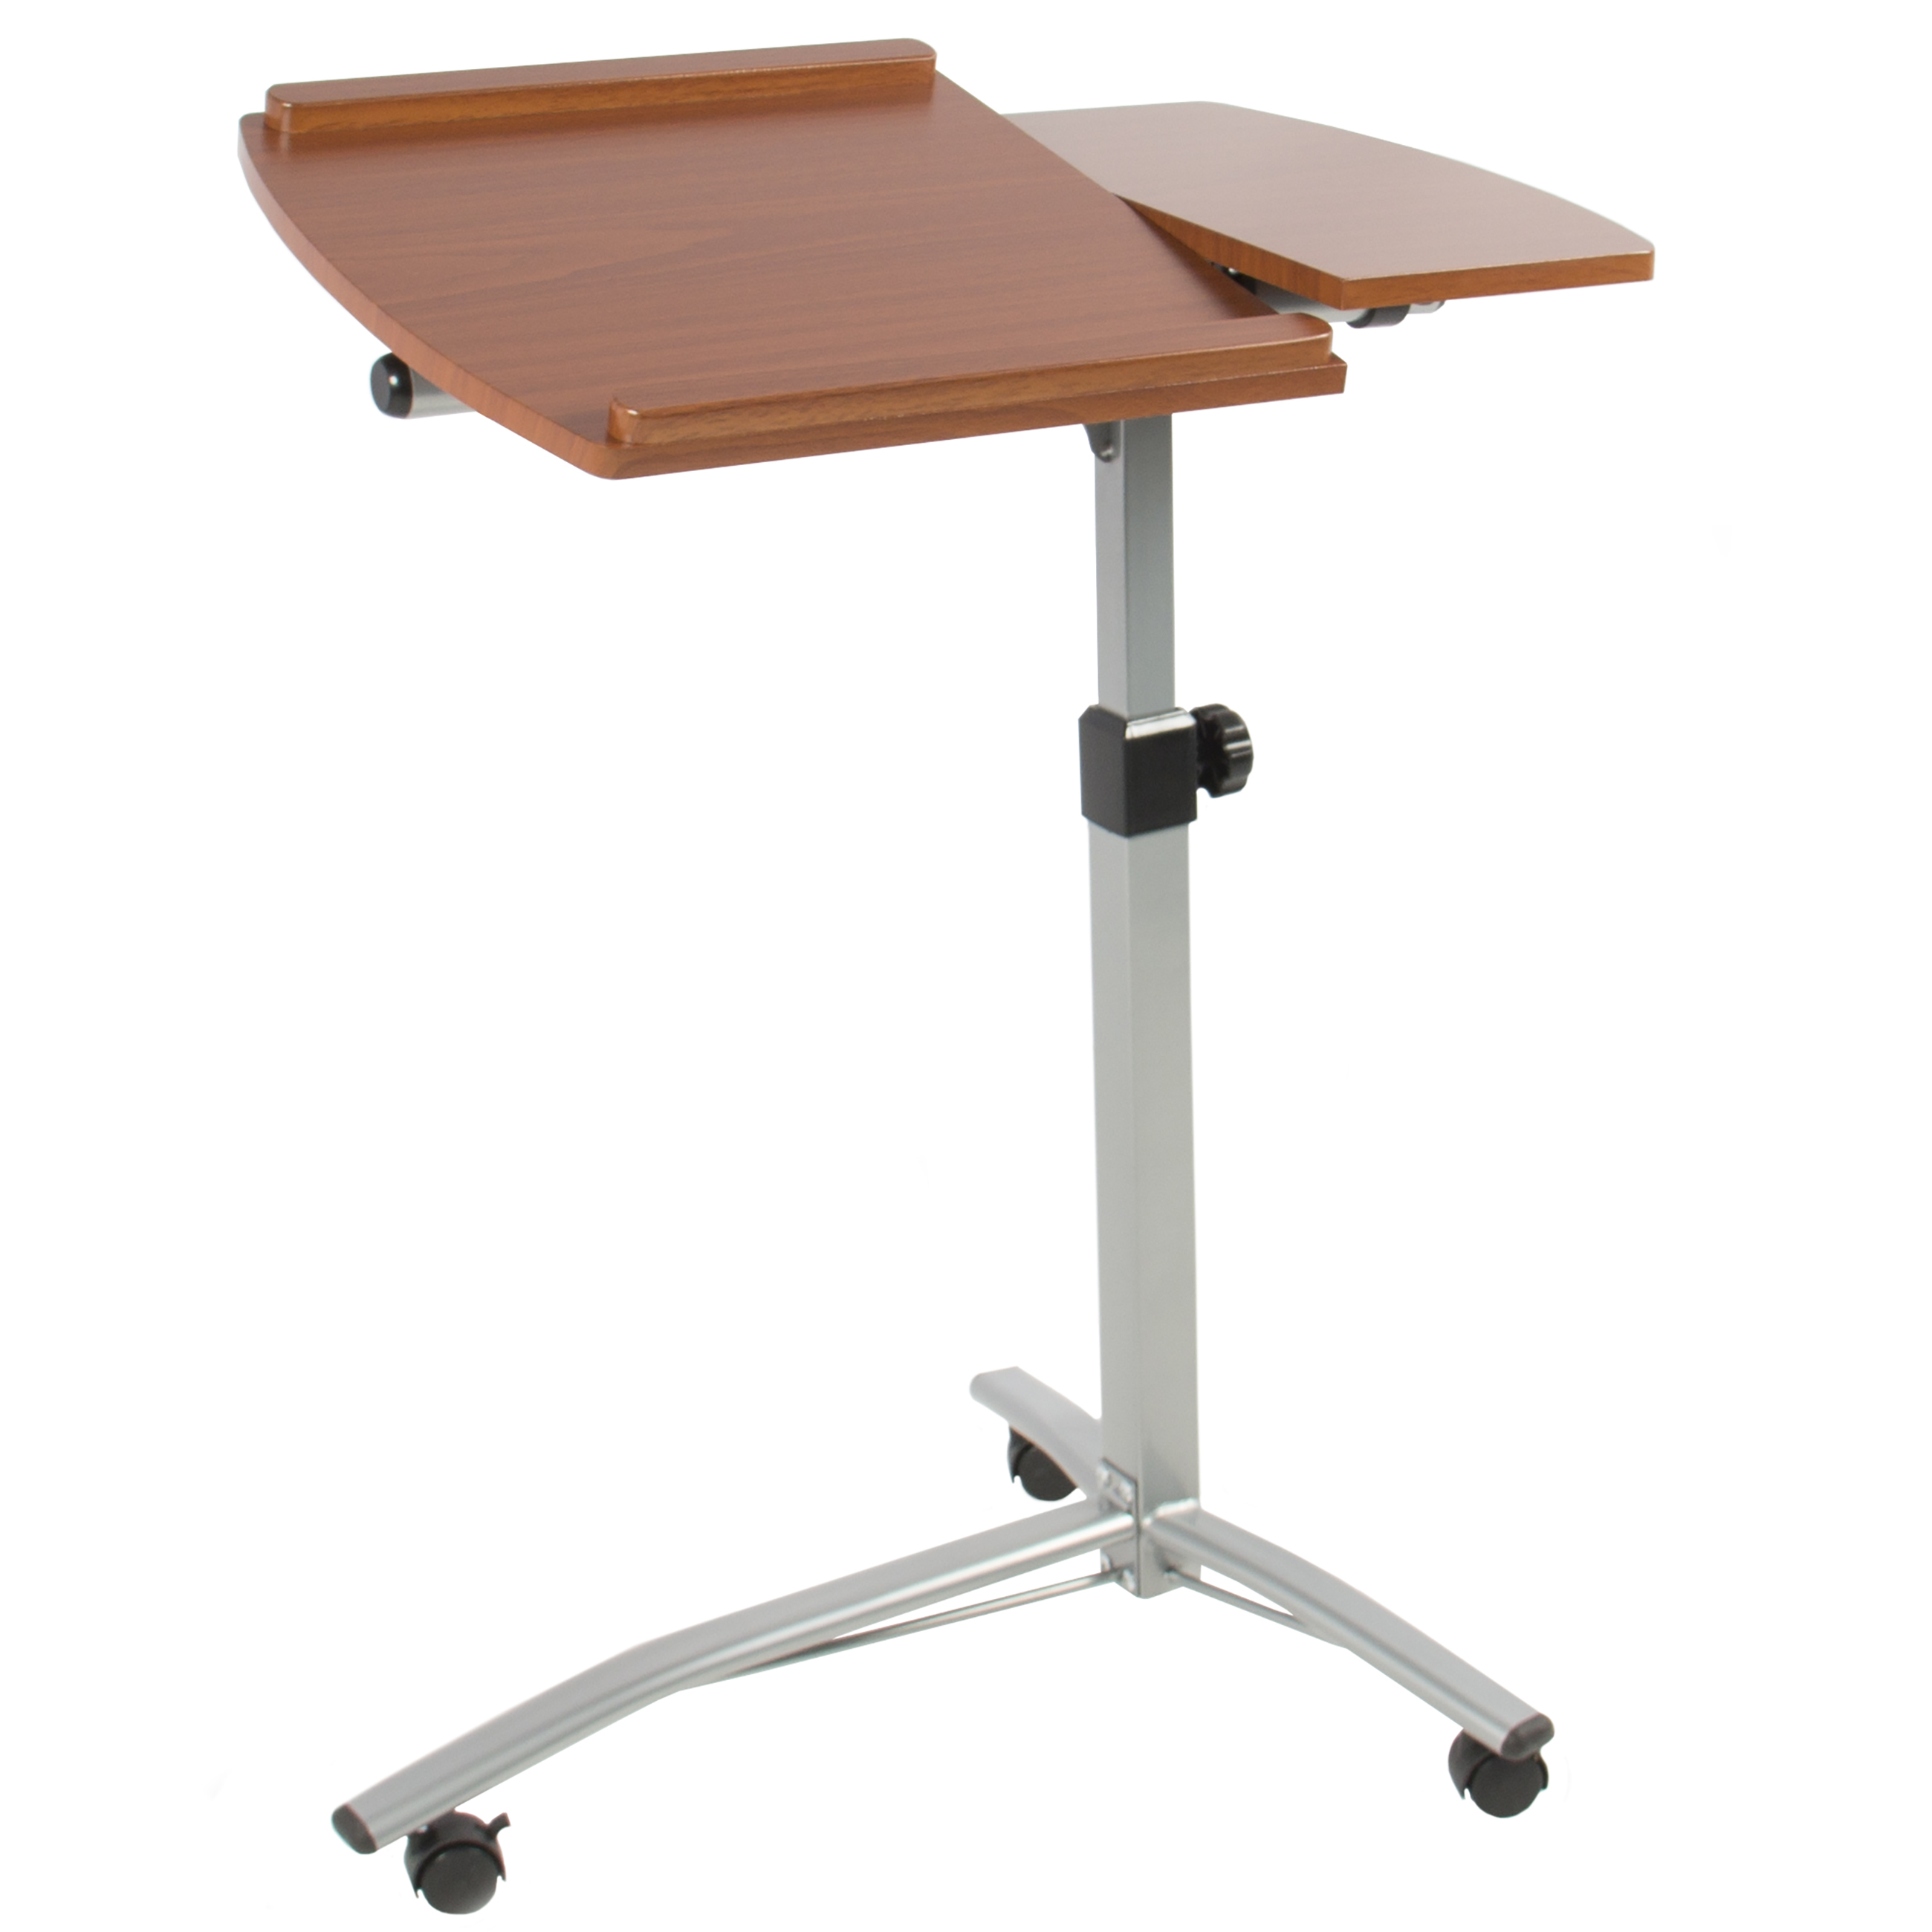 Incredible Best Choice Products Angle And Height Adjustable Mobile Laptop Desk Rolling Cart Stand W Locking Swivel Casters 2 Shelves Slide Stoppers Brown Home Interior And Landscaping Oversignezvosmurscom